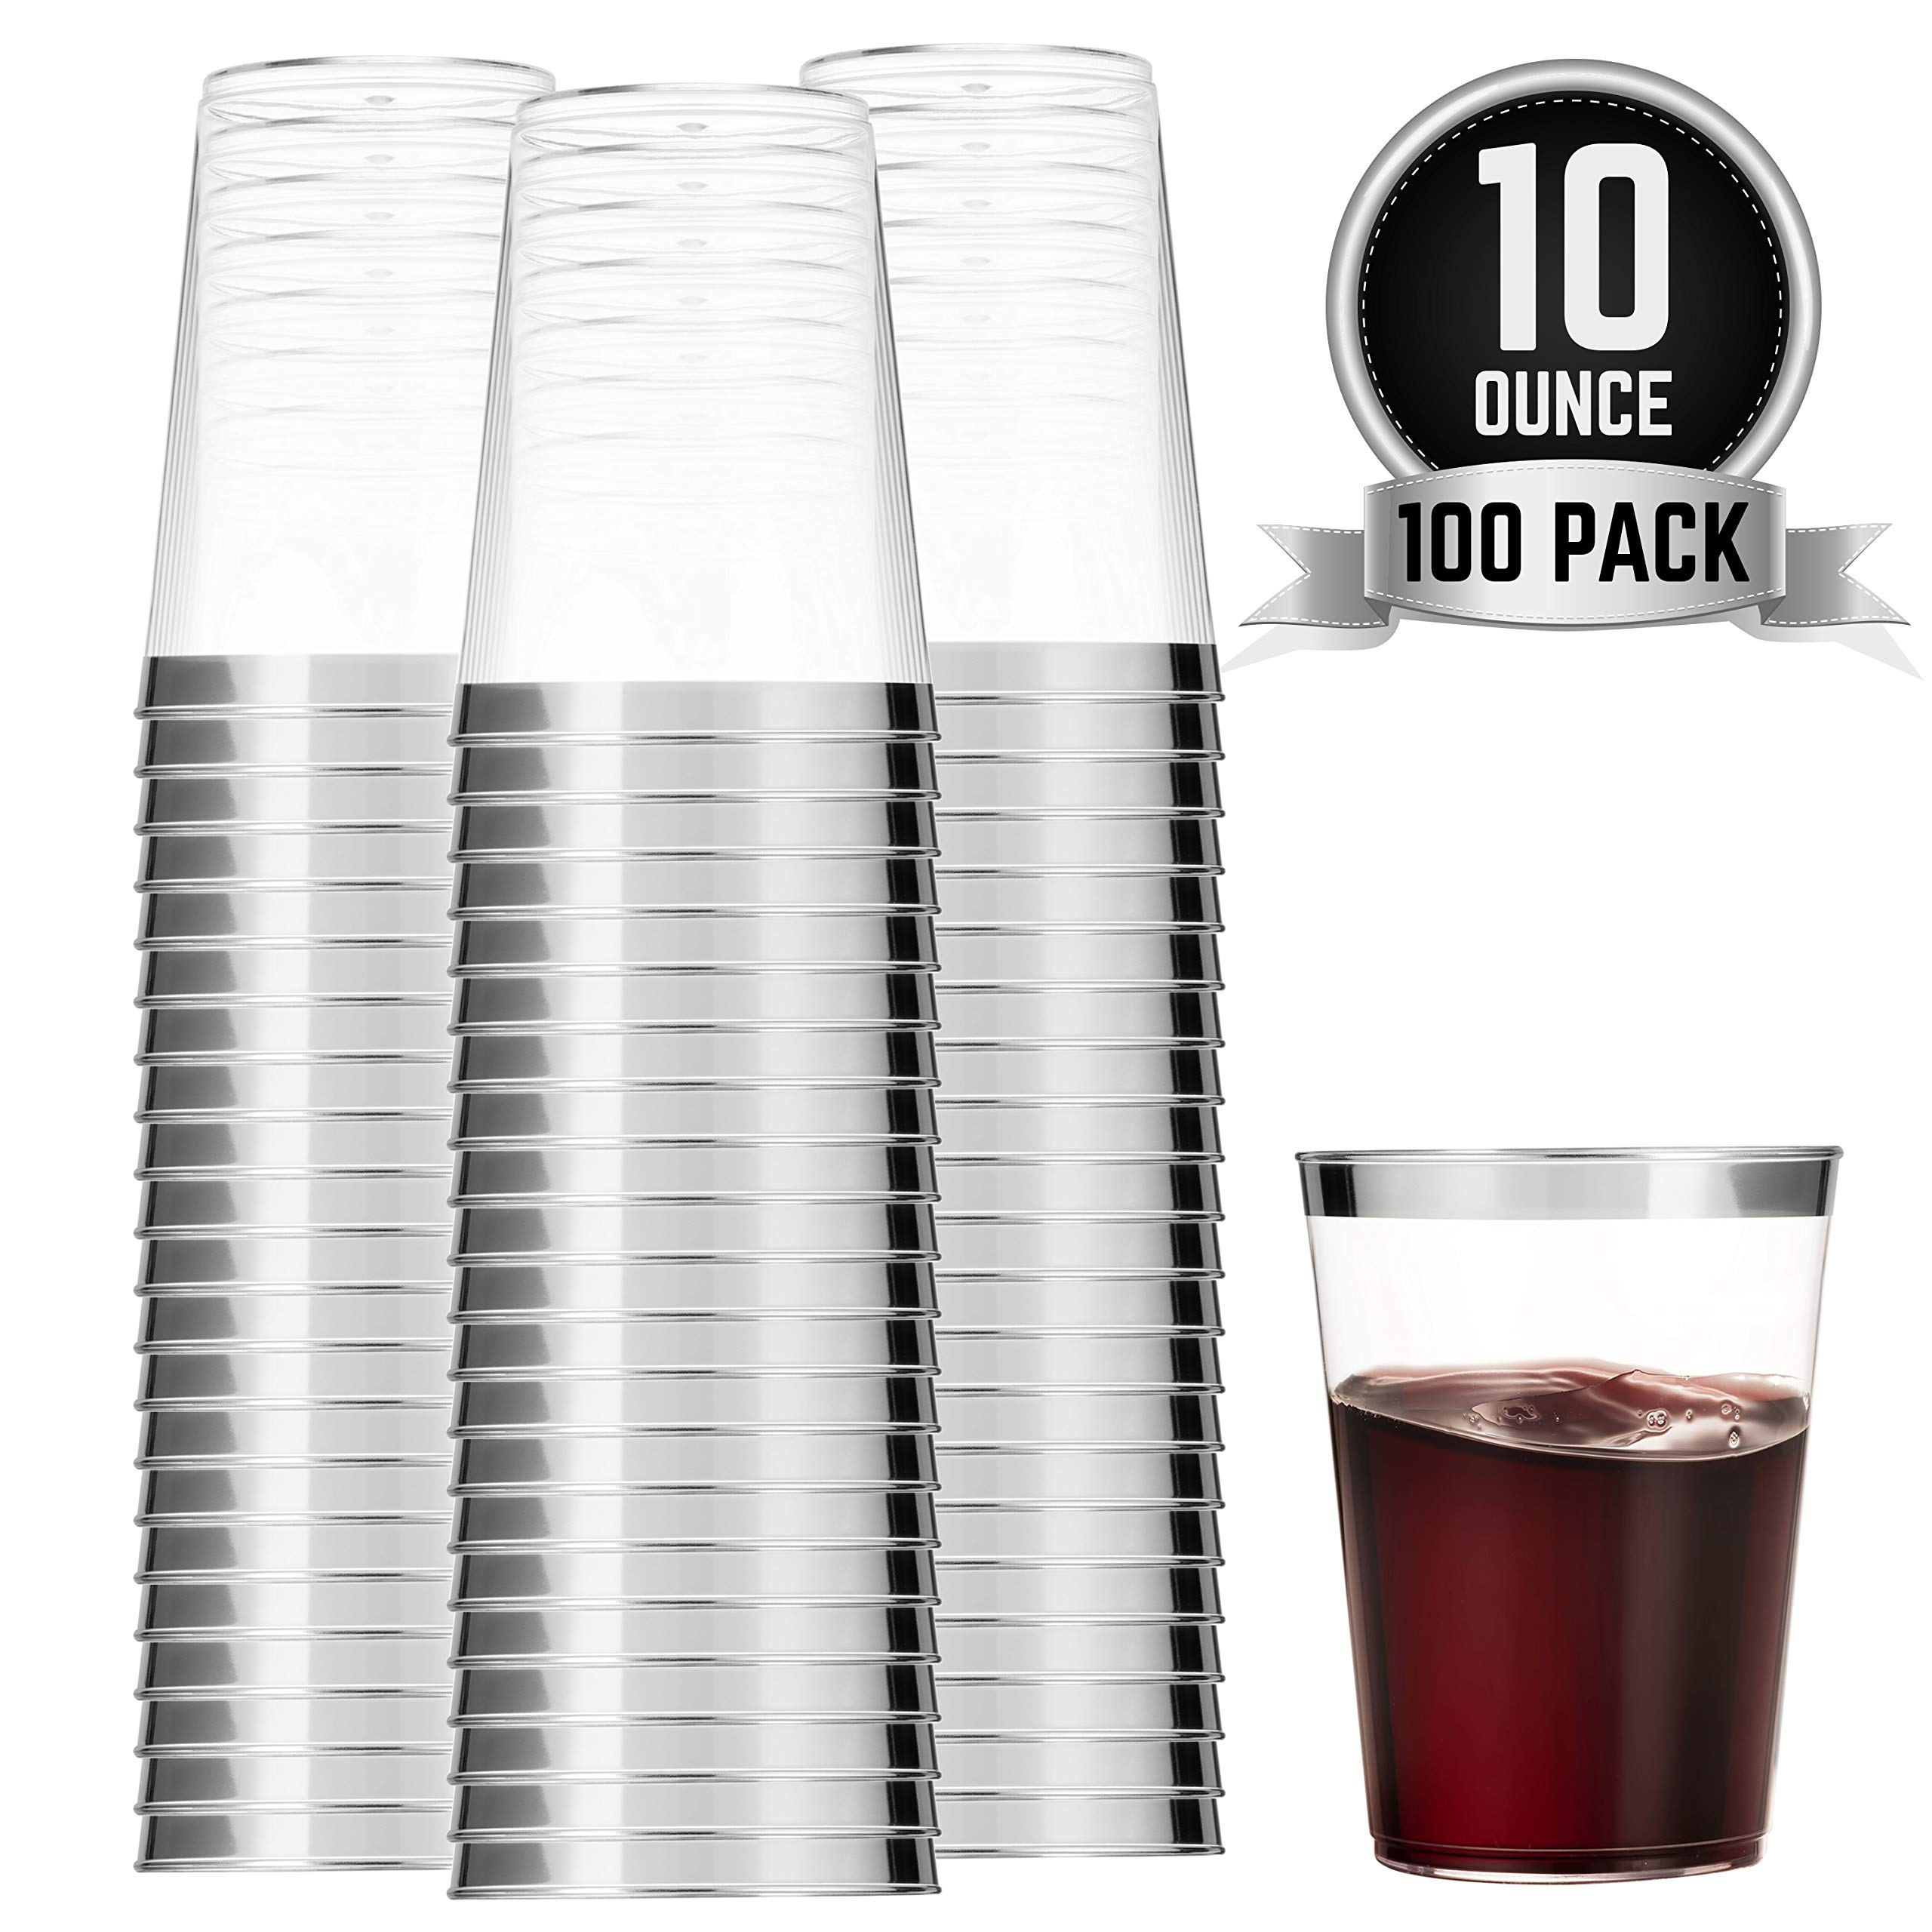 100 Silver Plastic Cups 10 Oz Clear Plastic Cups Tumblers Silver Rimmed Cups Fancy Disposable Wedding Cups Elegant Party Cups with Silver Rim